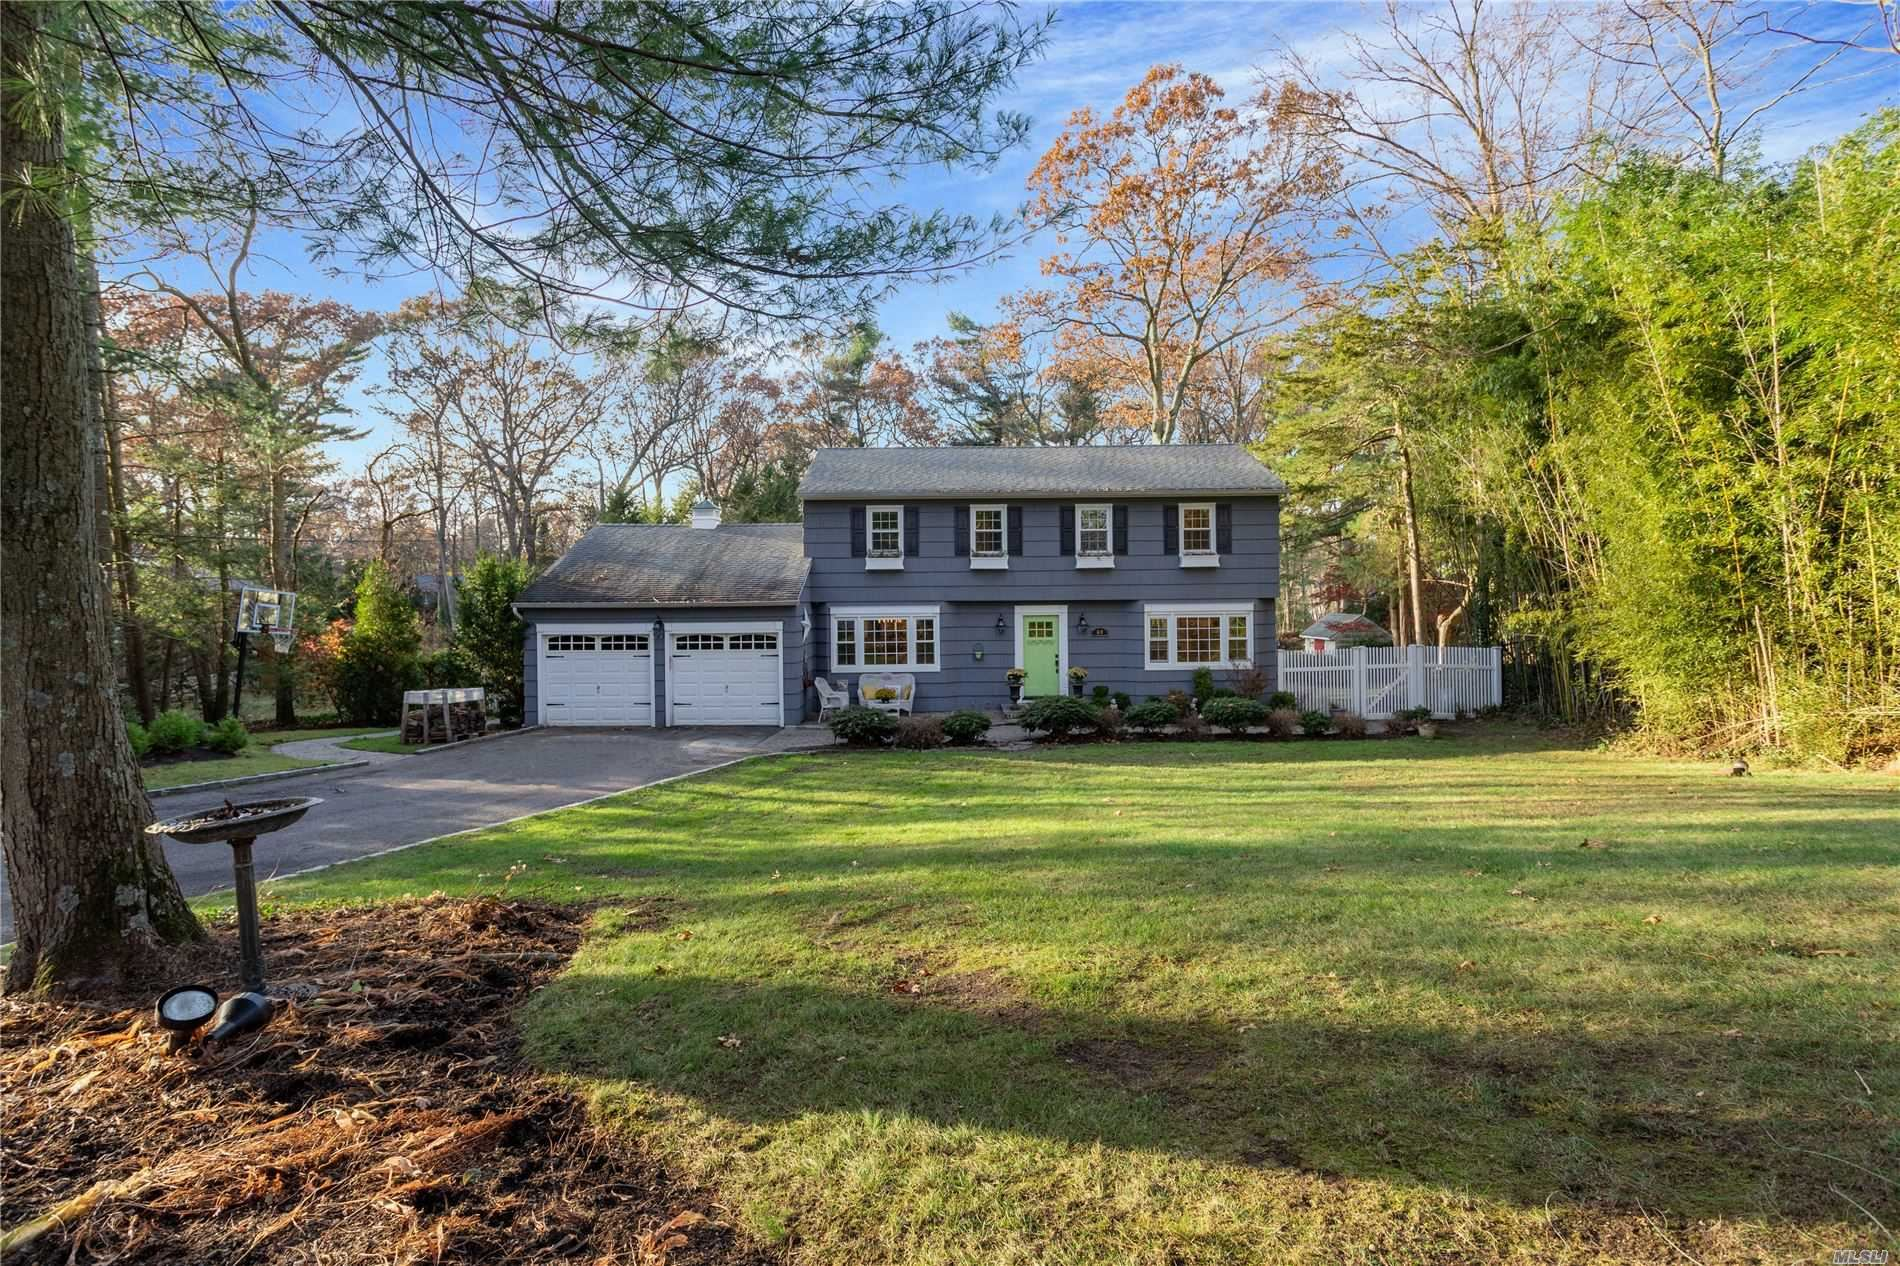 69 Oleander Drive, Northport, NY 11768 - MLS#: 3183147